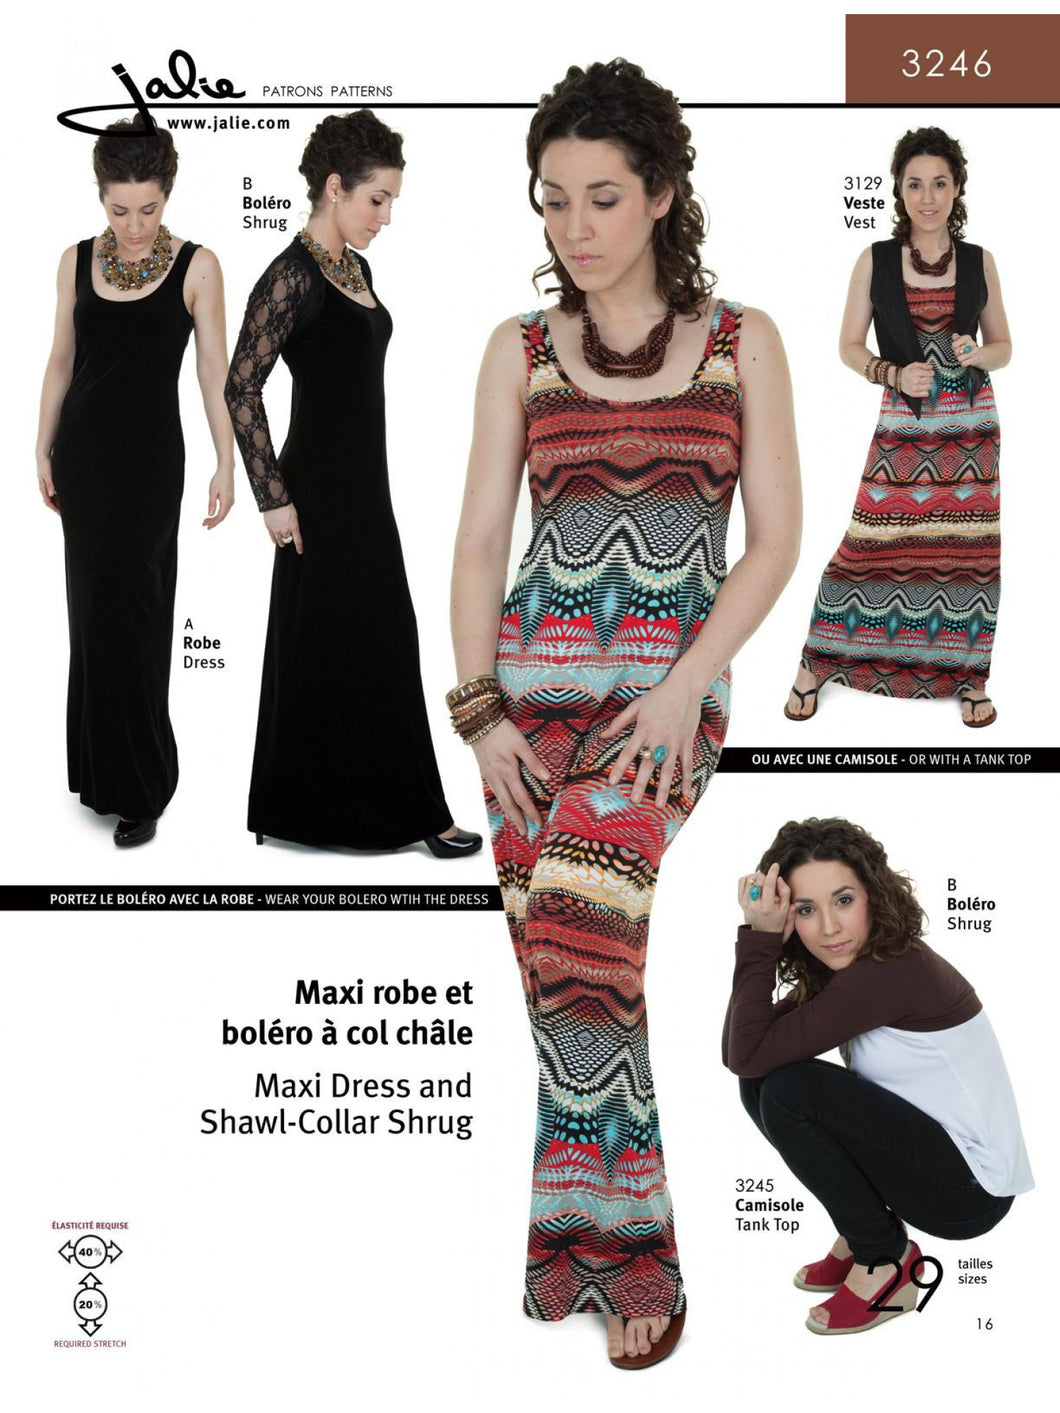 MAXI DRESS AND SHAWL-COLLAR SHRUG - PAPER PATTERN